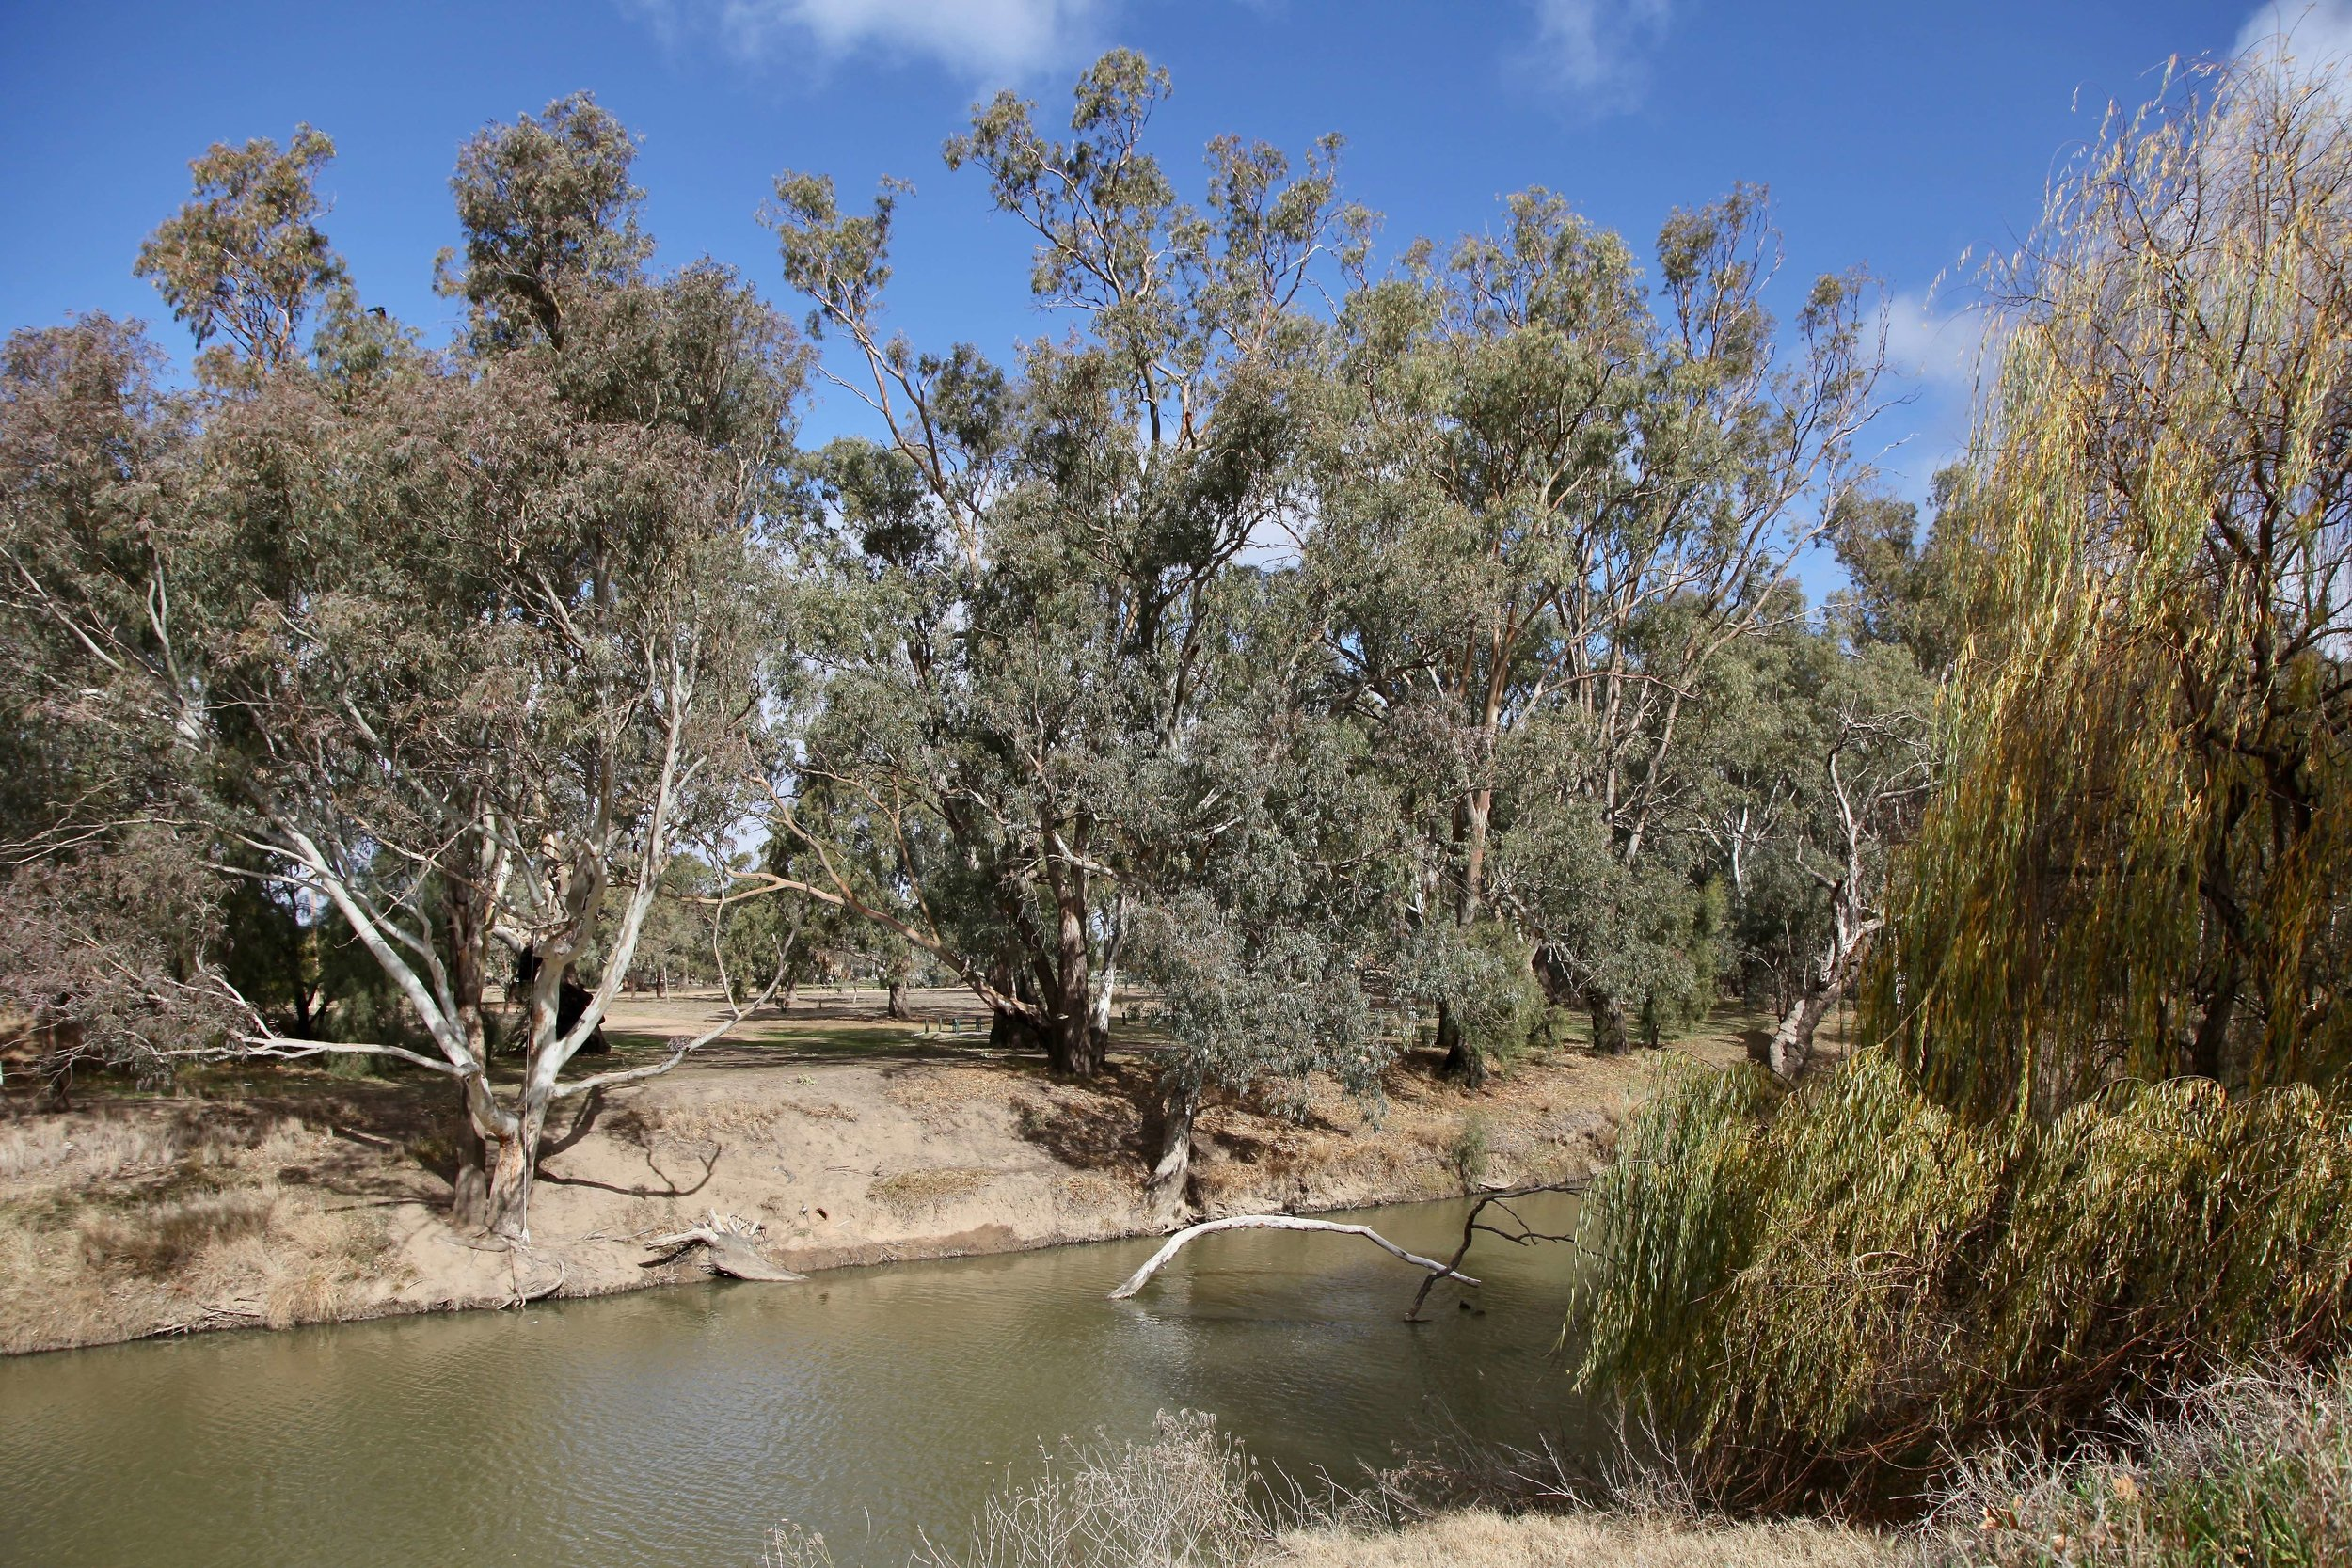 The Lachlan River is the fourth longest river in Australia at 1339km.